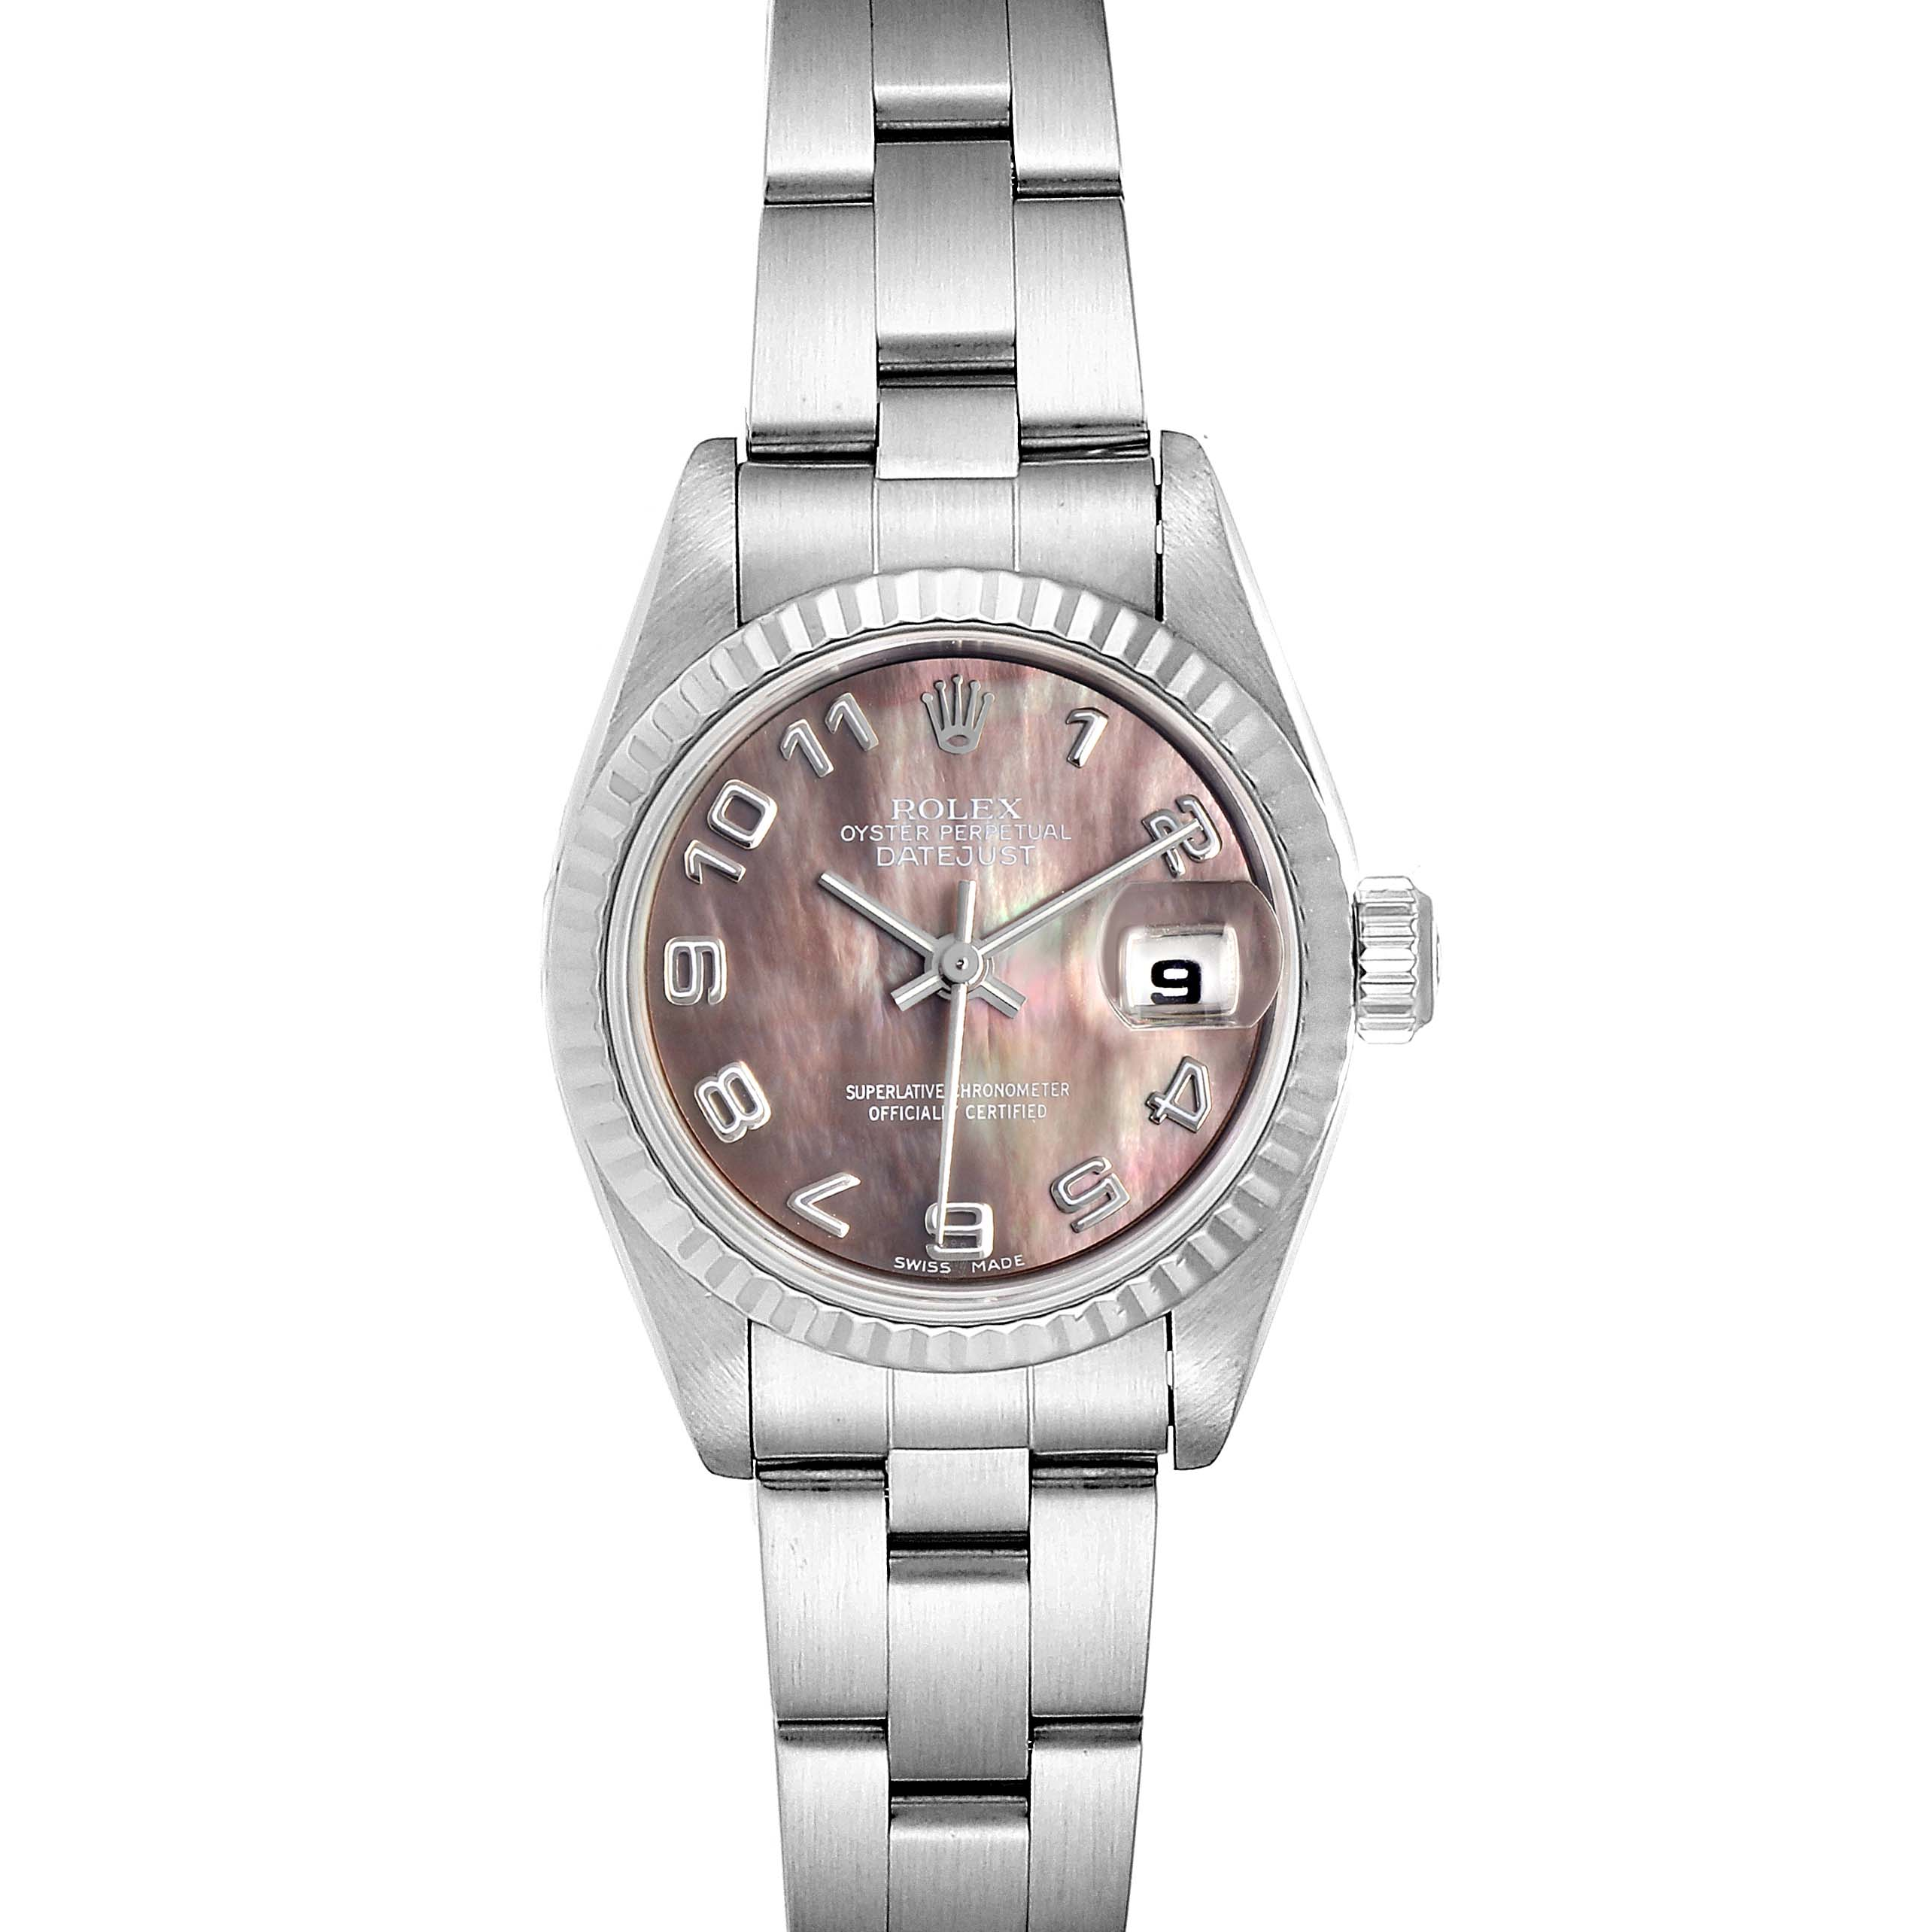 Photo of Rolex Datejust 26 Steel White Gold MOP Ladies Watch 79174 Box Papers